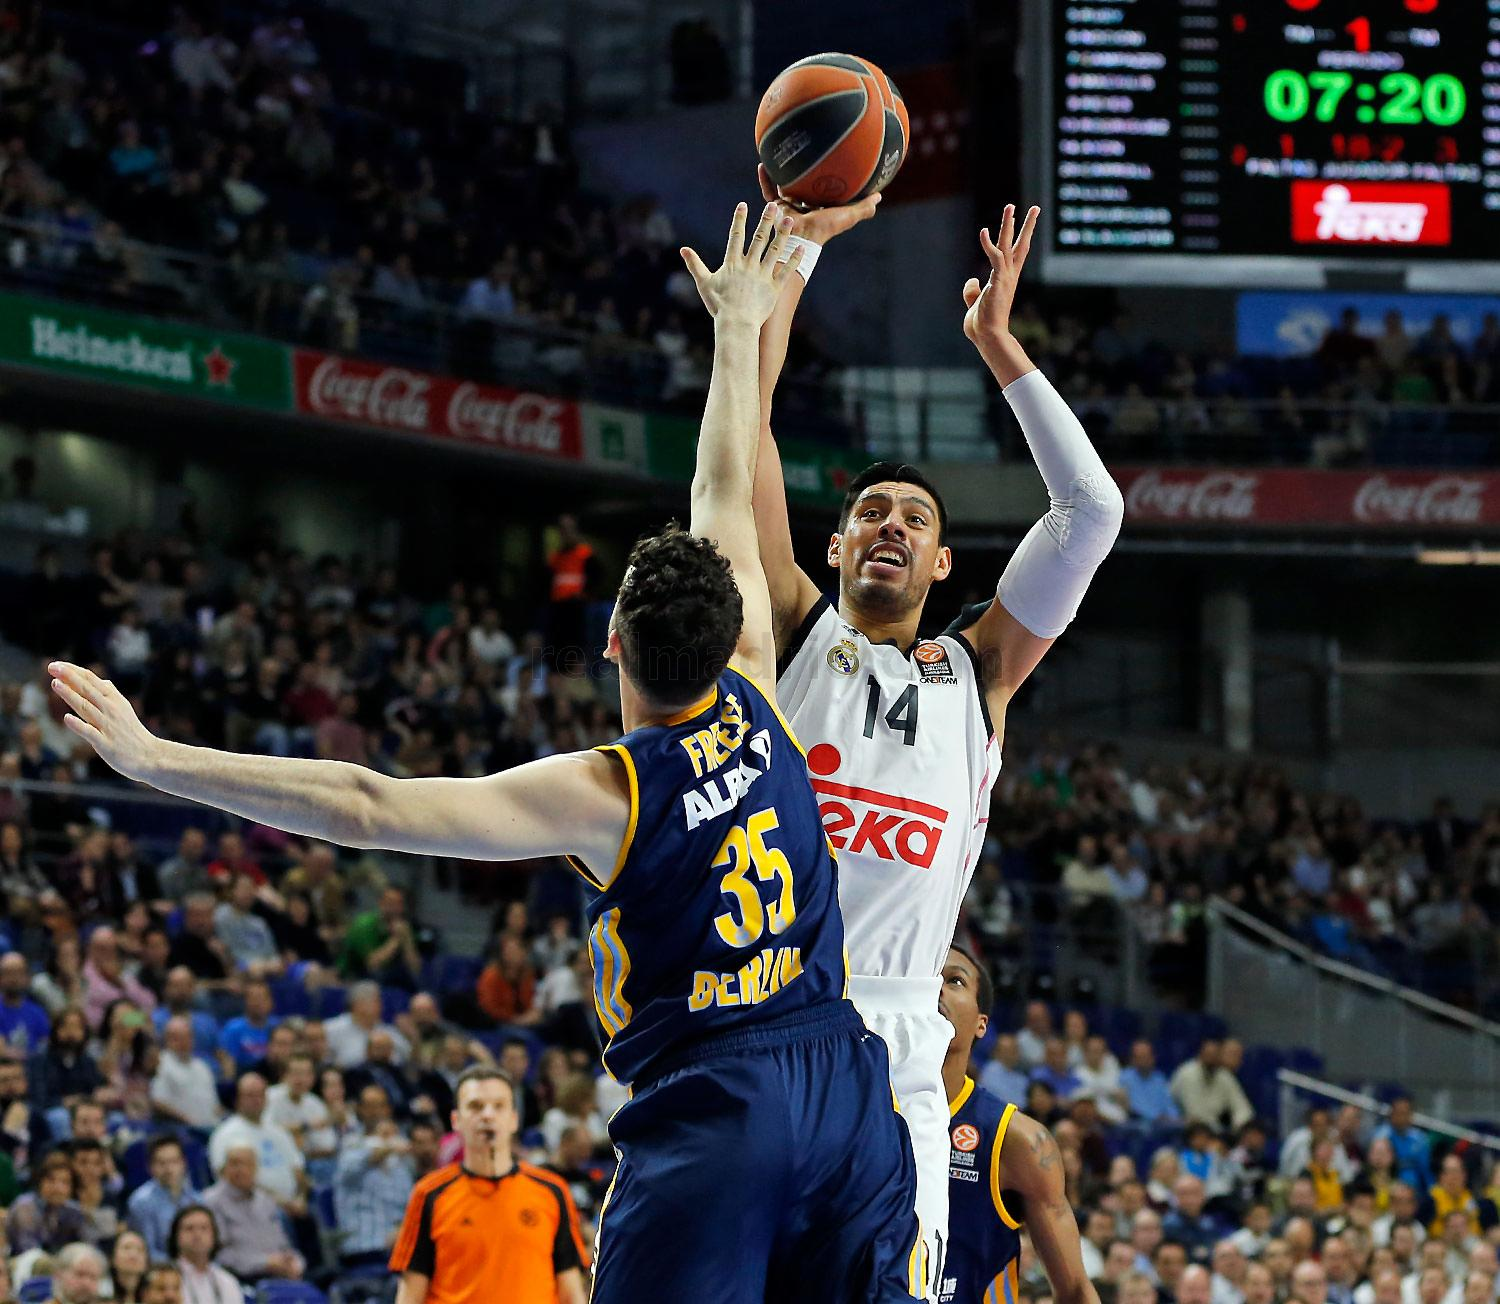 Real Madrid - Real Madrid - Alba Berlin - 12-03-2015